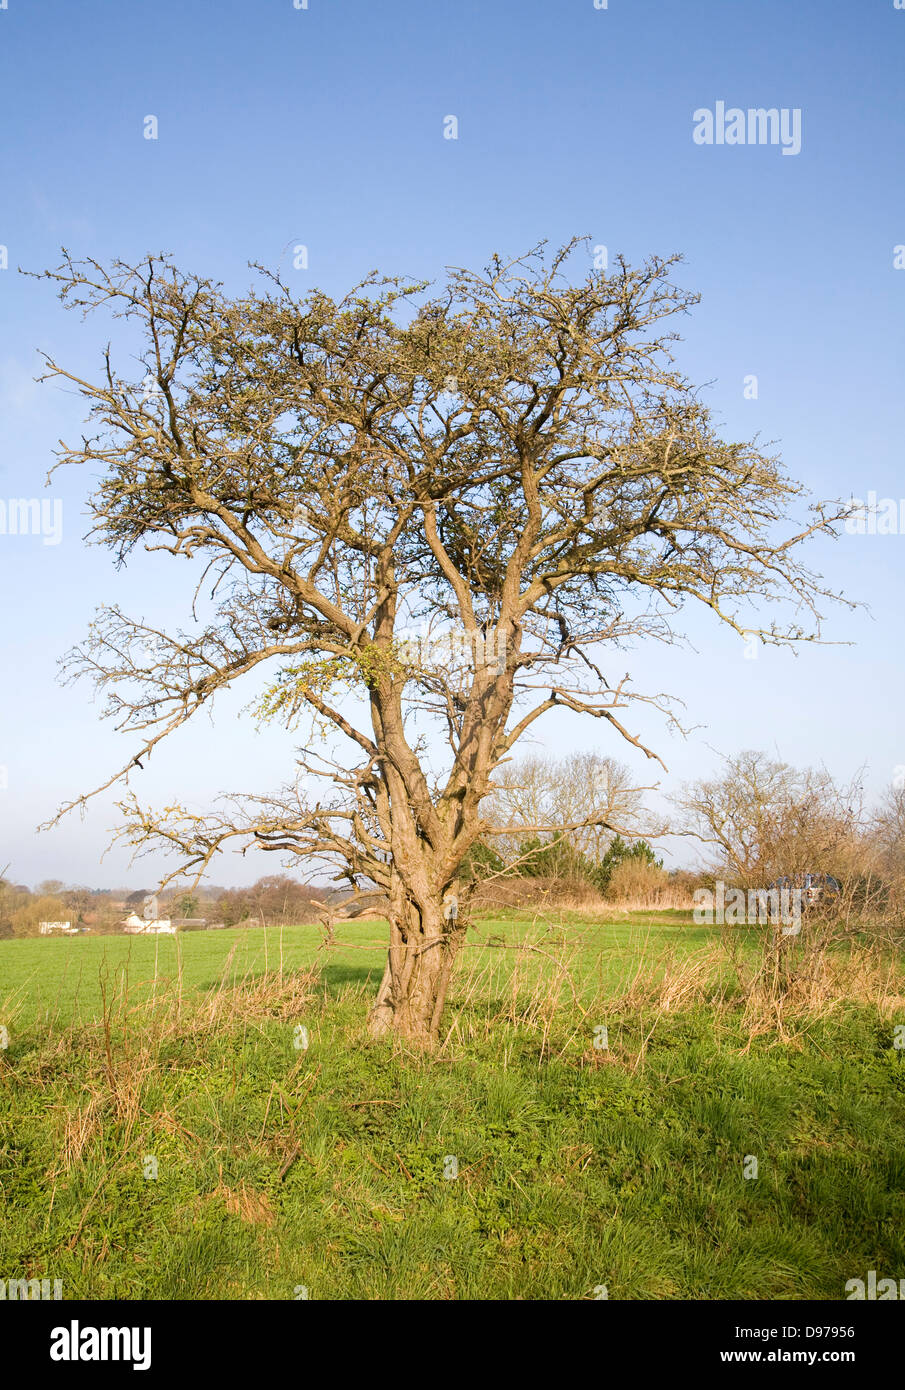 Leafless tree stands alone on field boundary, Sutton, Suffolk, England - Stock Image